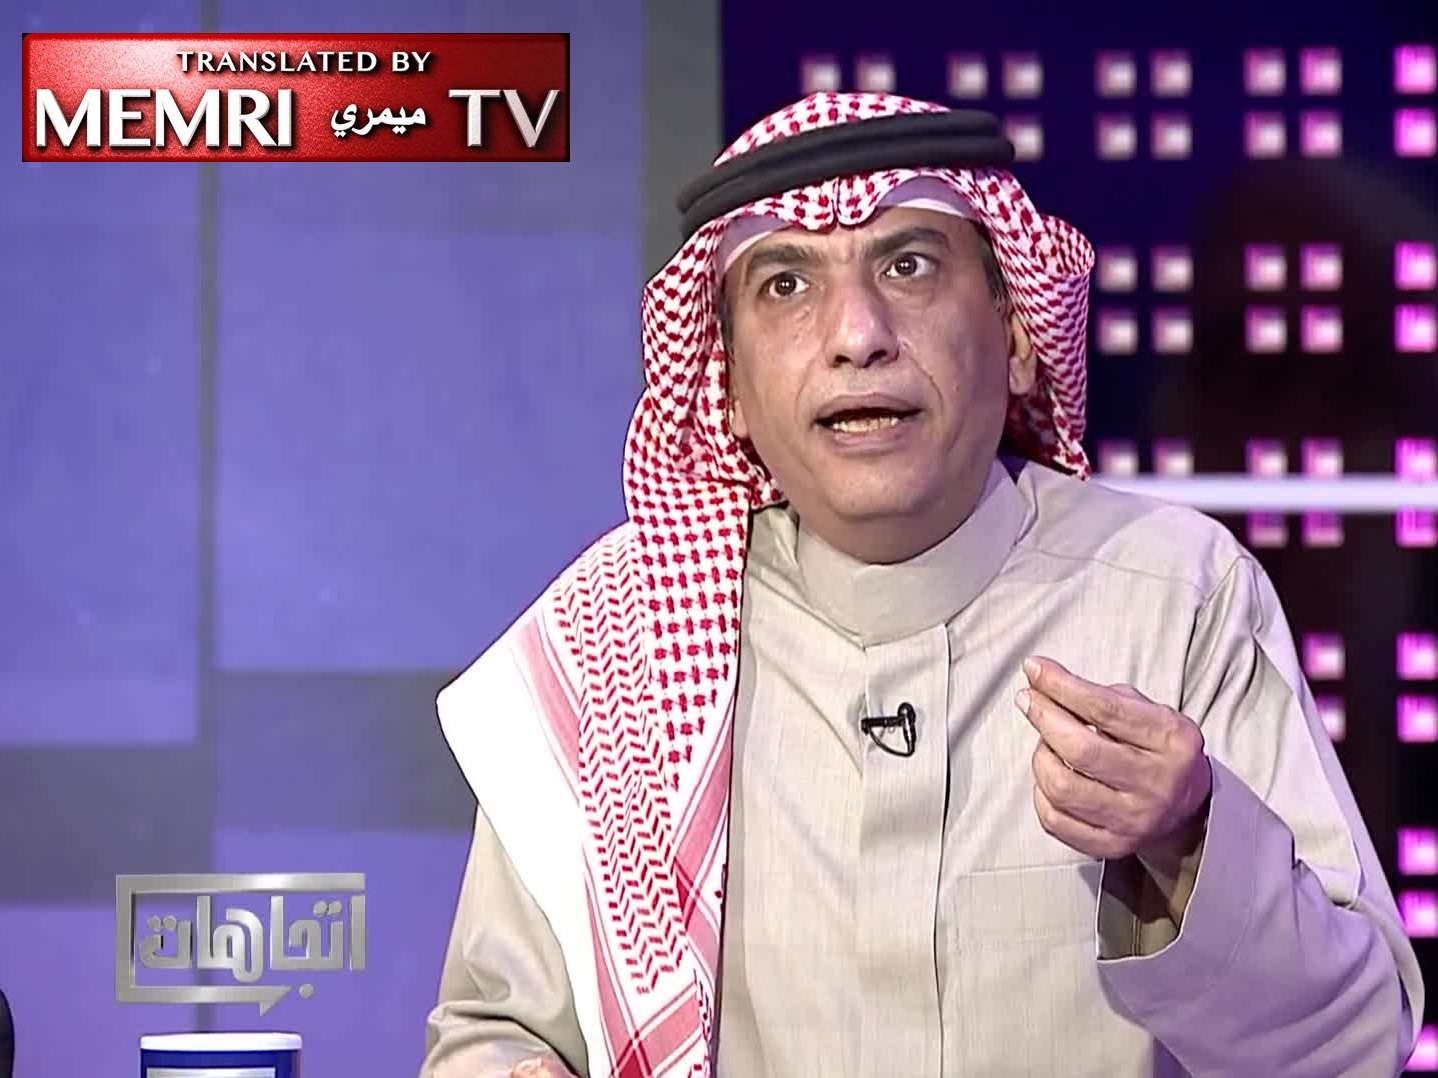 Saudi Journalist Dahham Al-Enazi: We Should Normalize Relations with Israel, Iran and Turkey Are Bigger Threats